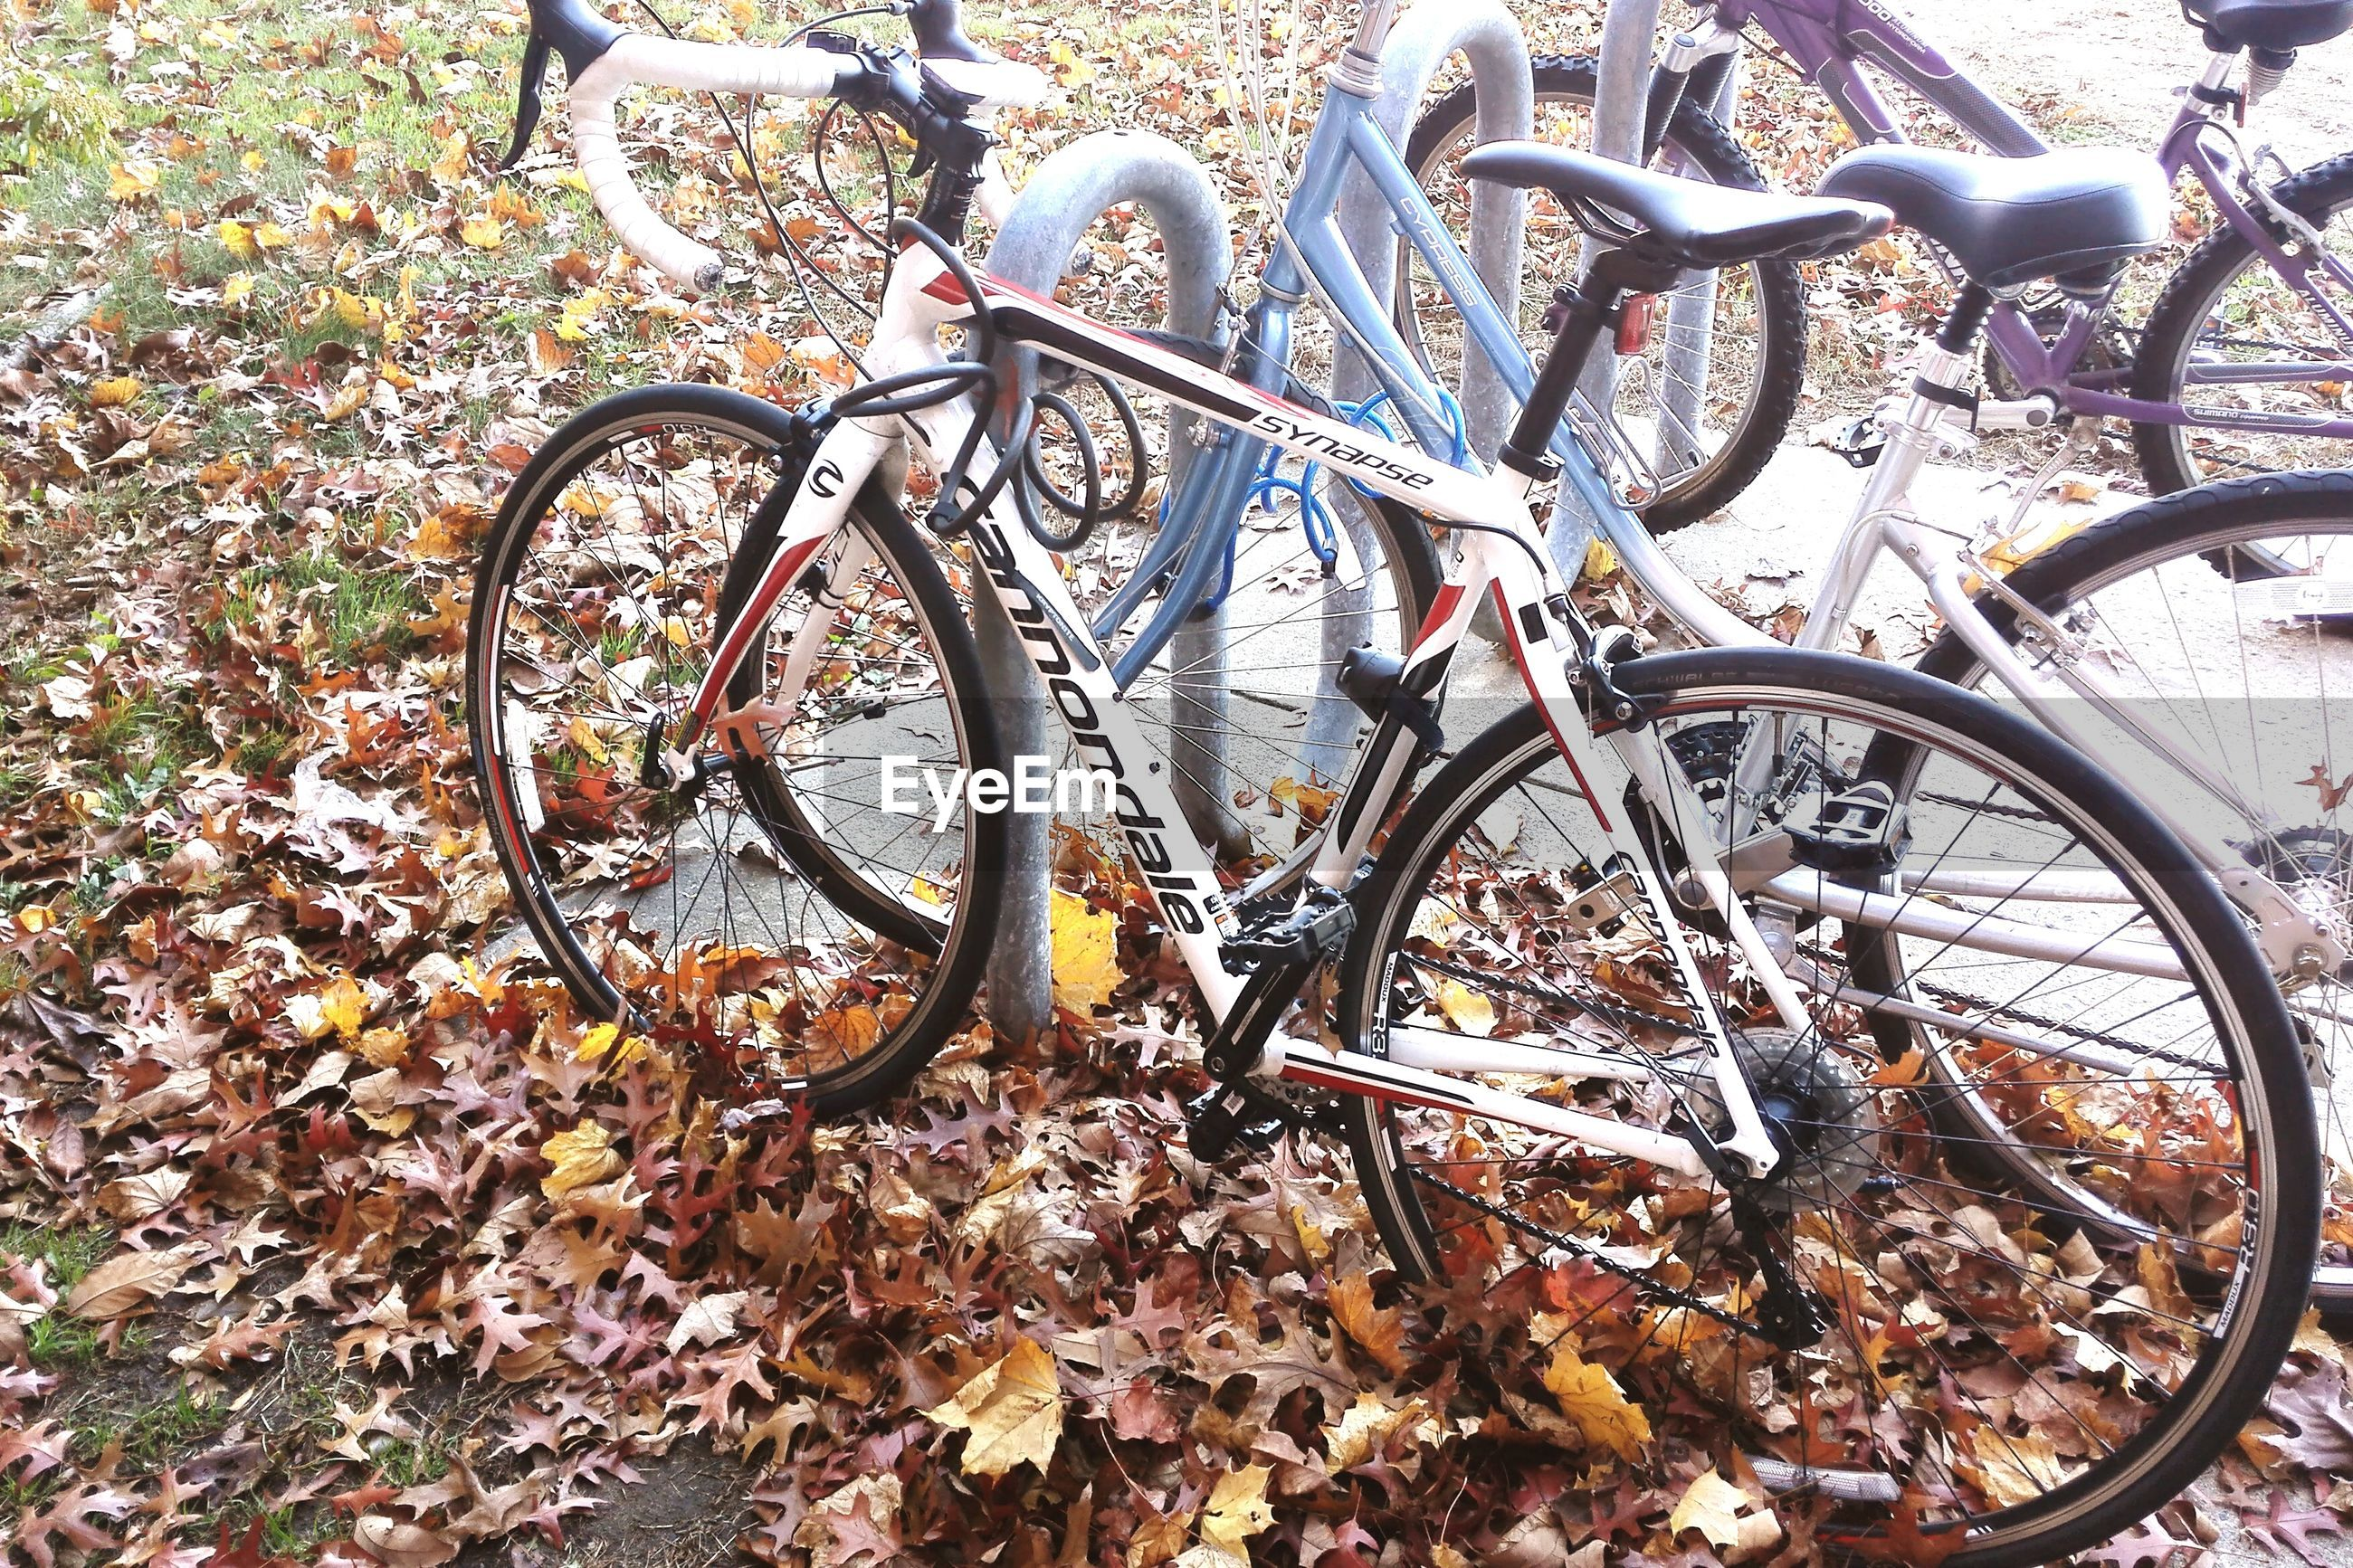 bicycle, high angle view, transportation, wheel, land vehicle, mode of transport, stationary, day, no people, metal, outdoors, parked, plant, dry, abandoned, leaf, nature, ground, sunlight, wall - building feature